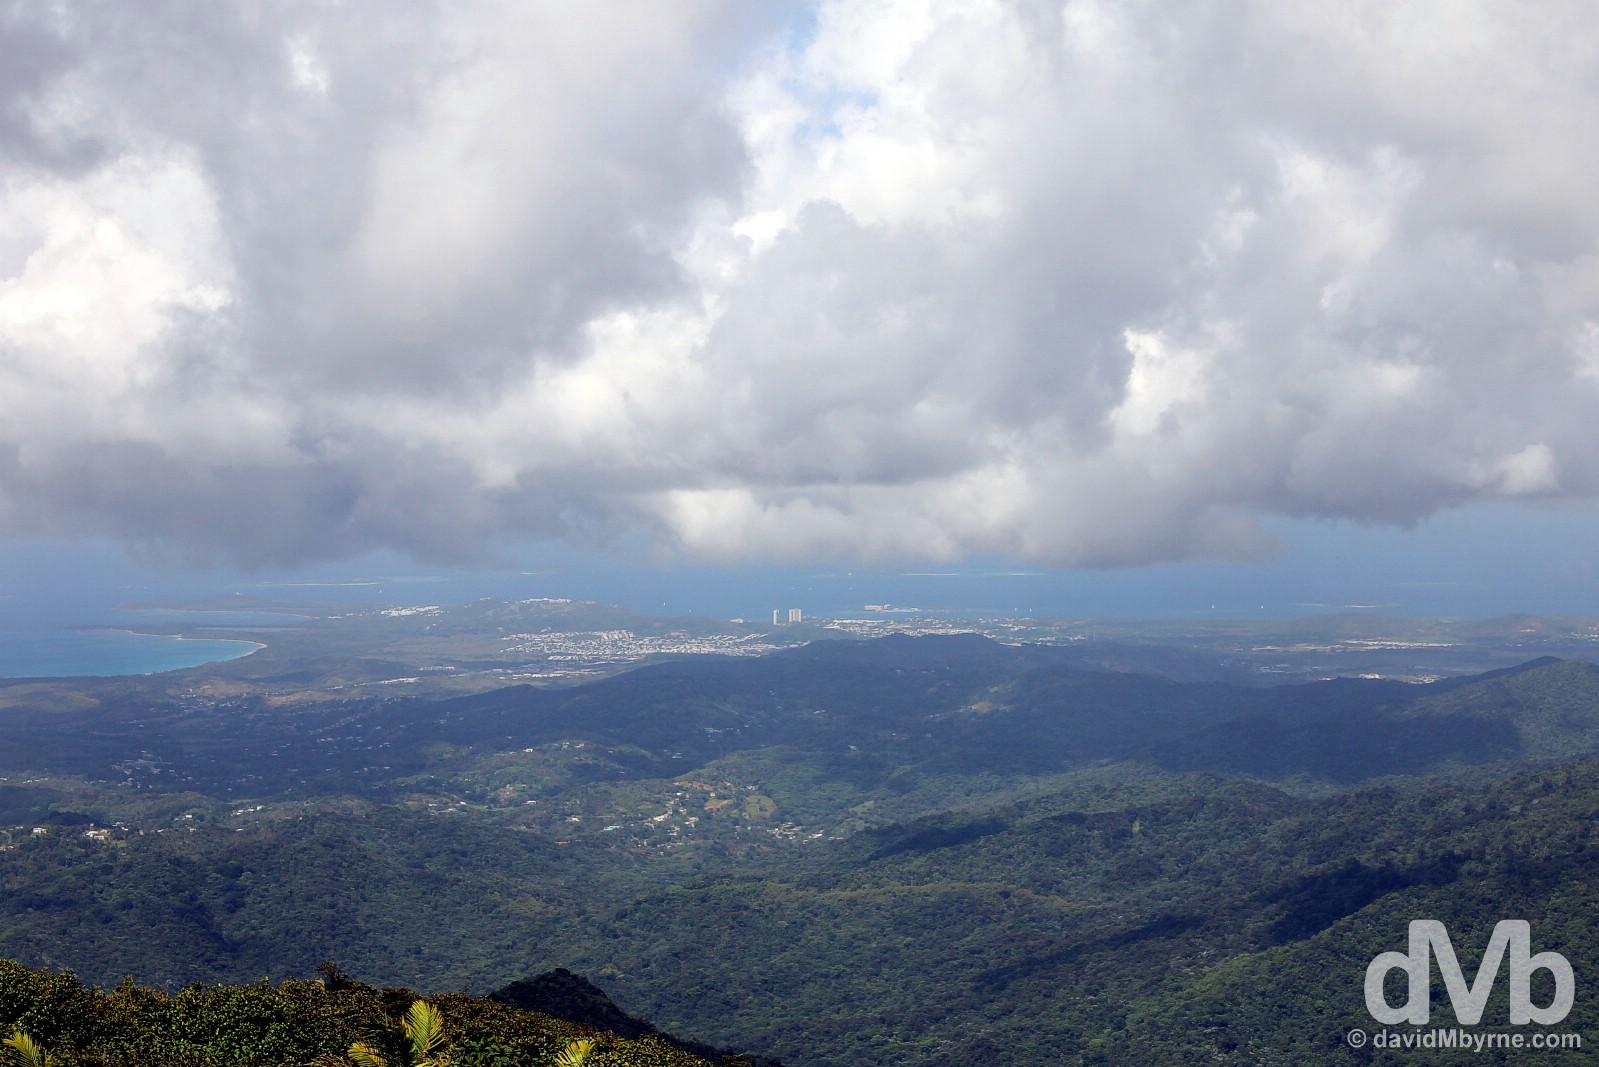 Eastern Puerto Rico from the highest point in El Yunque National Forest, Puerto Rico, Greater Antilles. June 5, 2015.